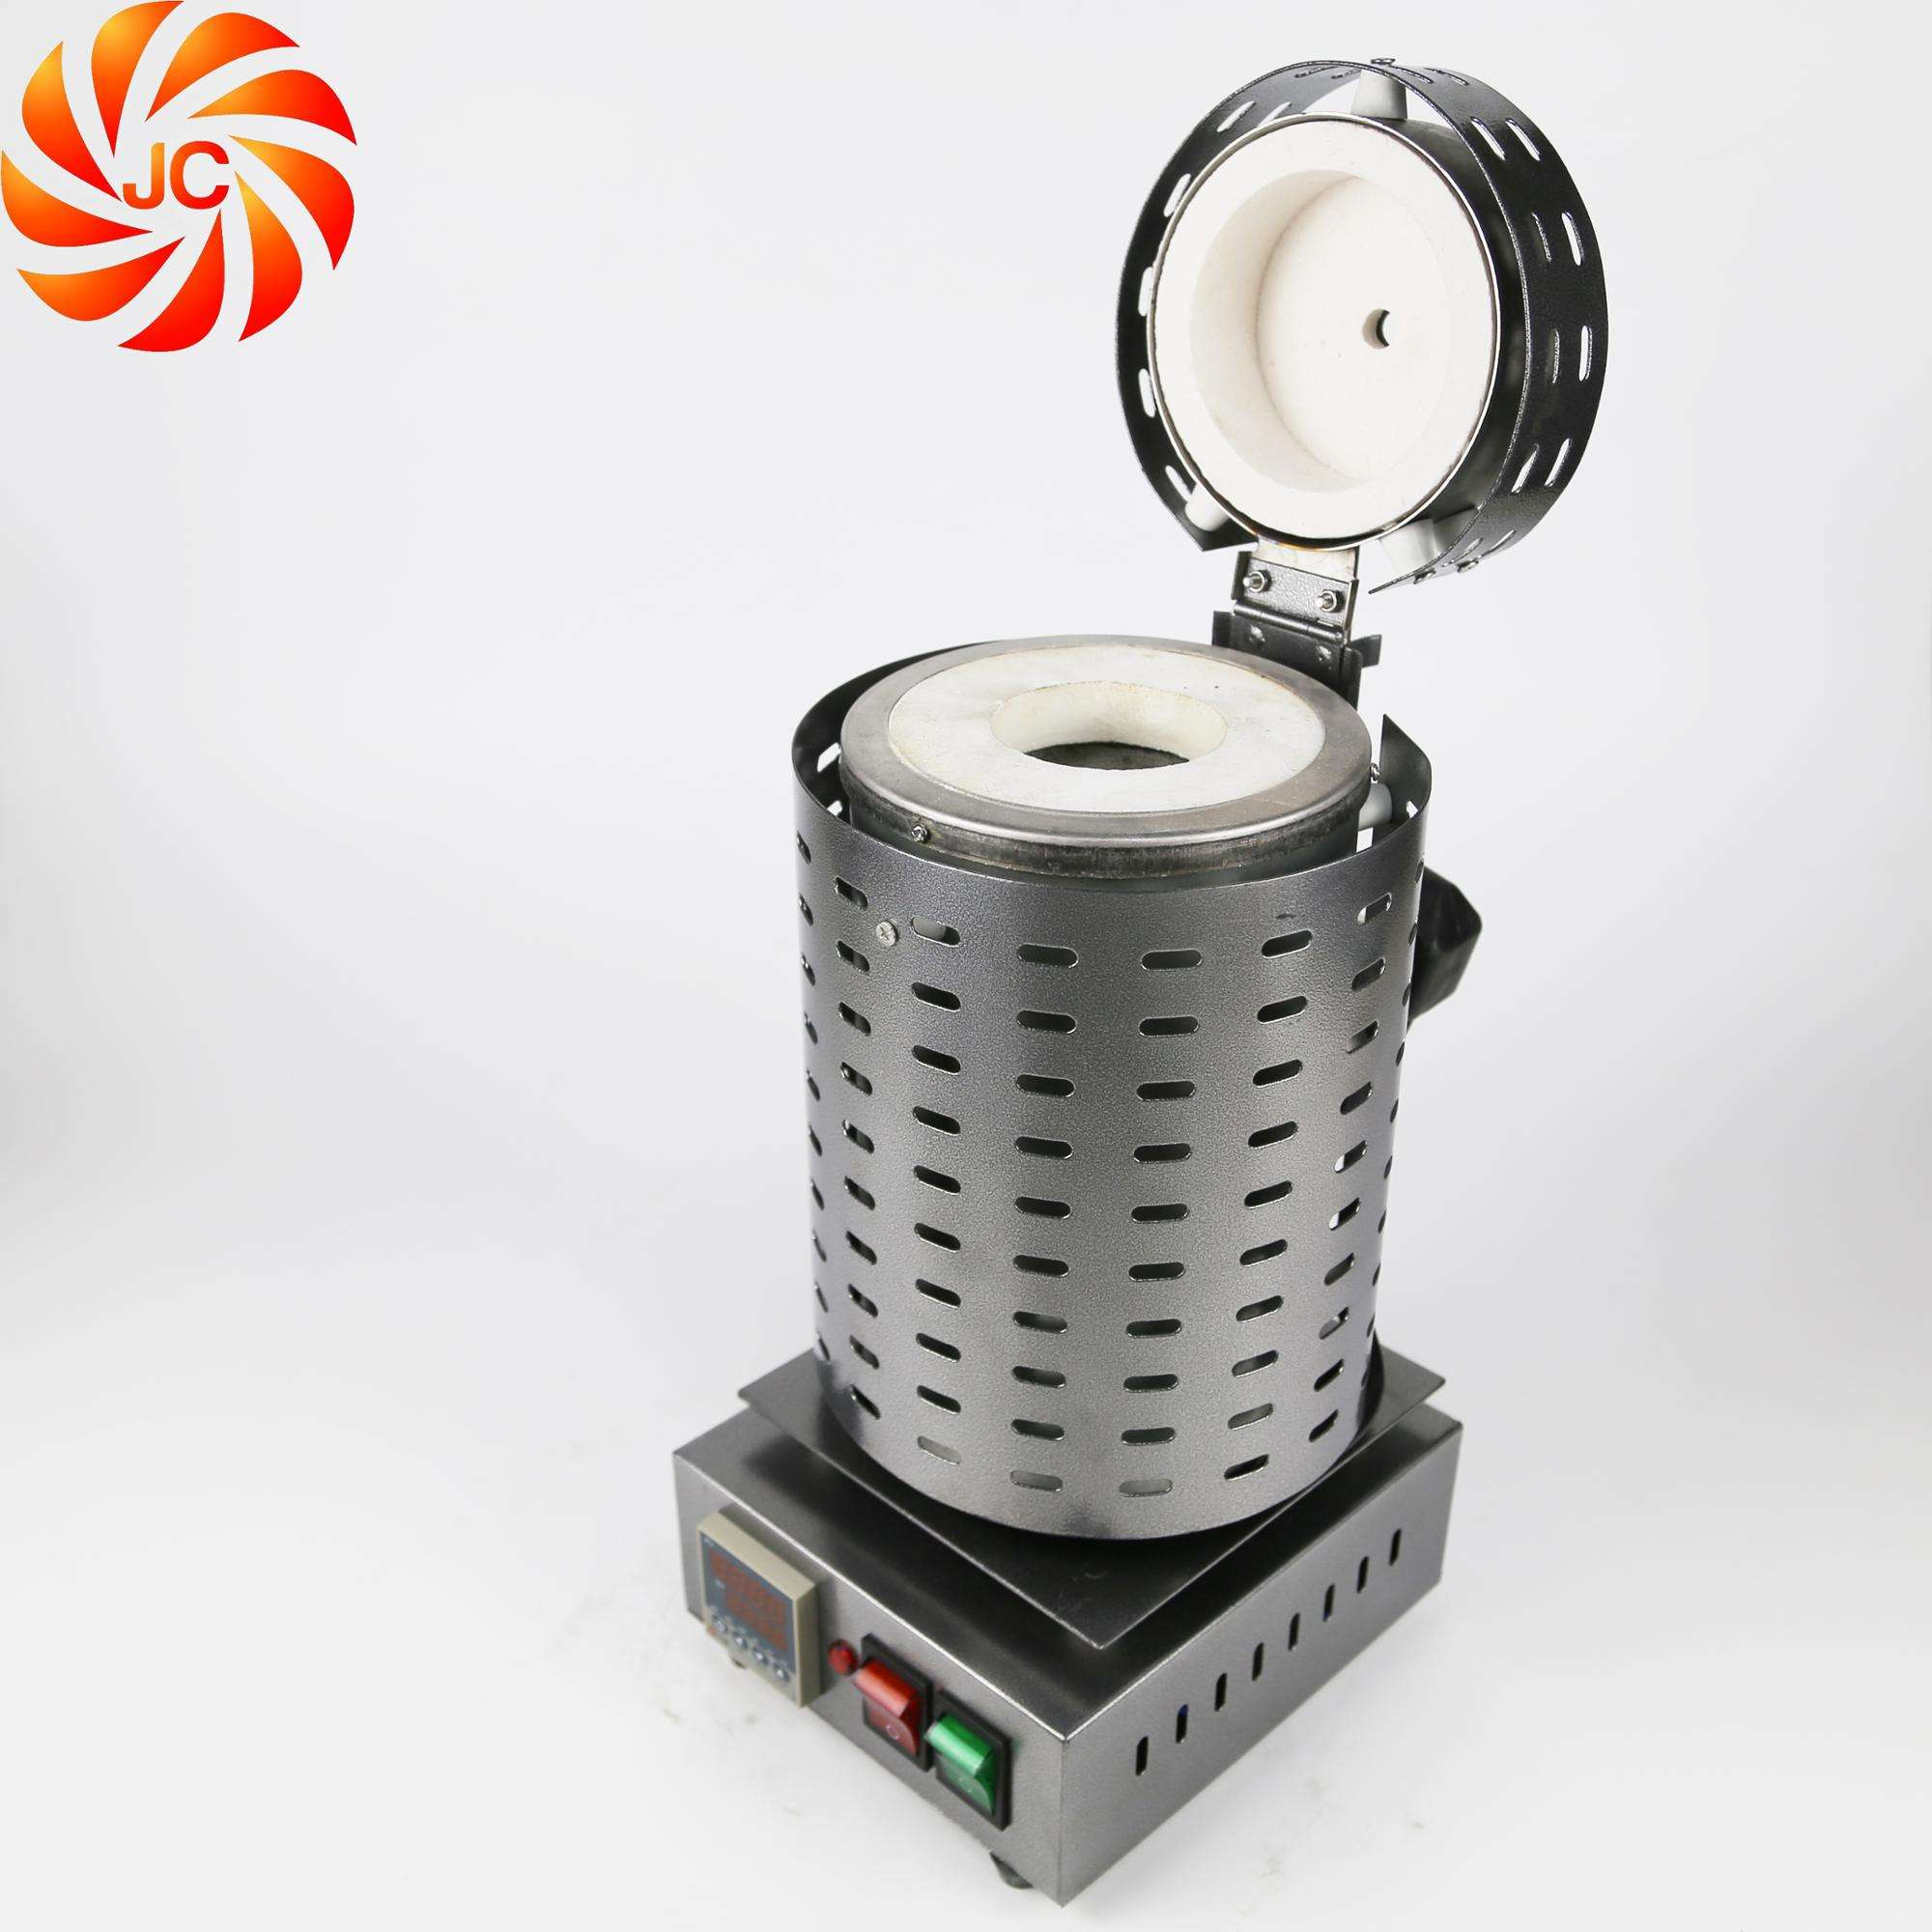 JC Portable small electric arc melting furnace for aluminum